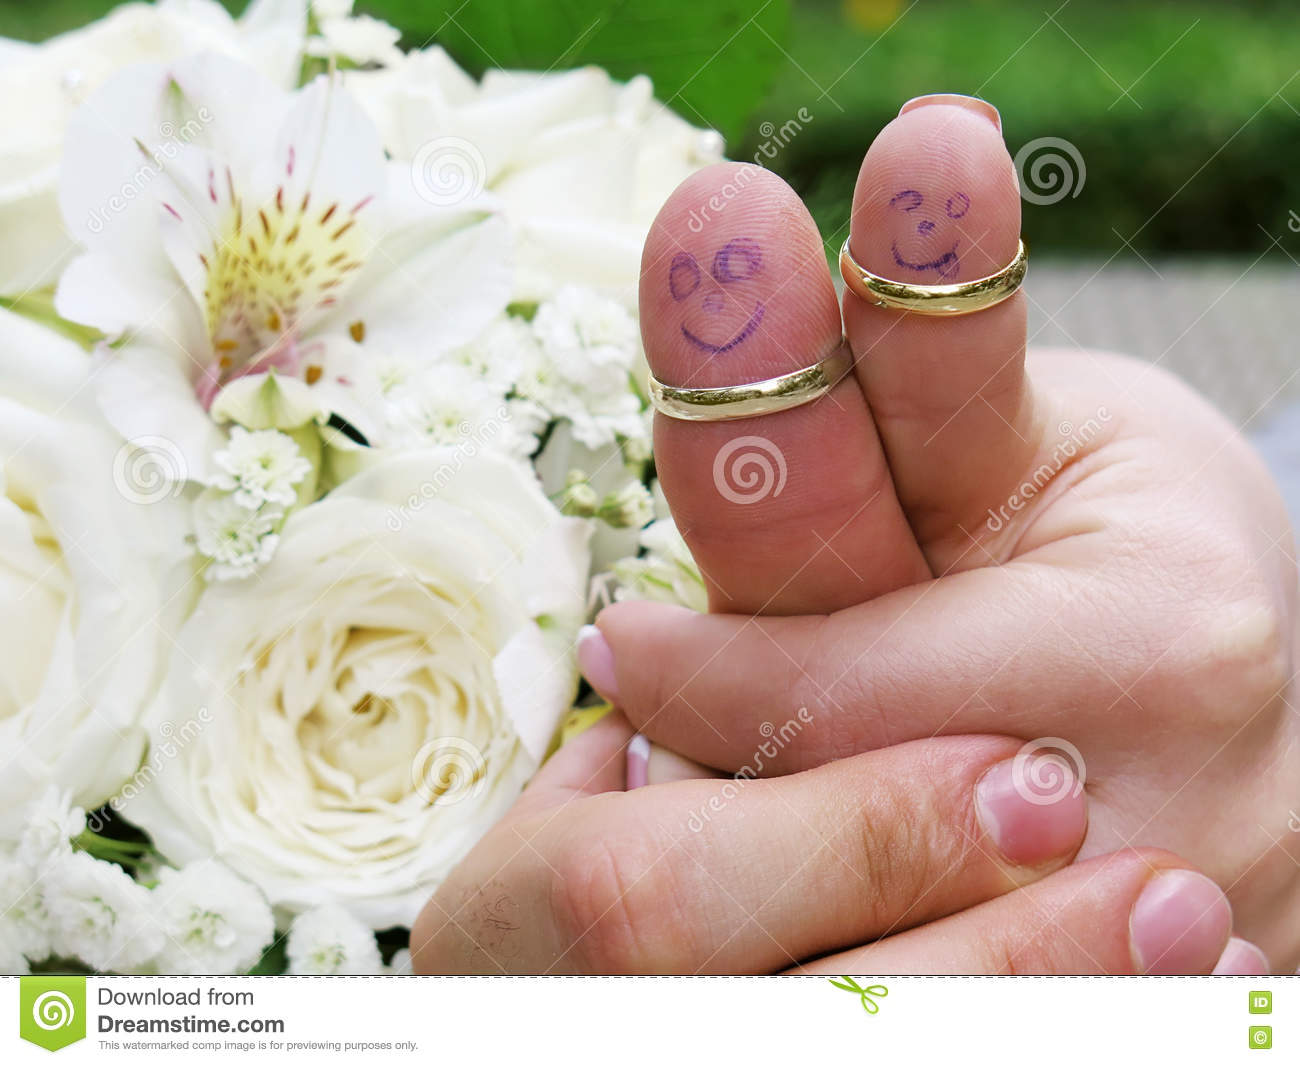 Wedding Rings On Their Fingers People Marrieds Bride And Groom, Painted  Funny Little Men Stock